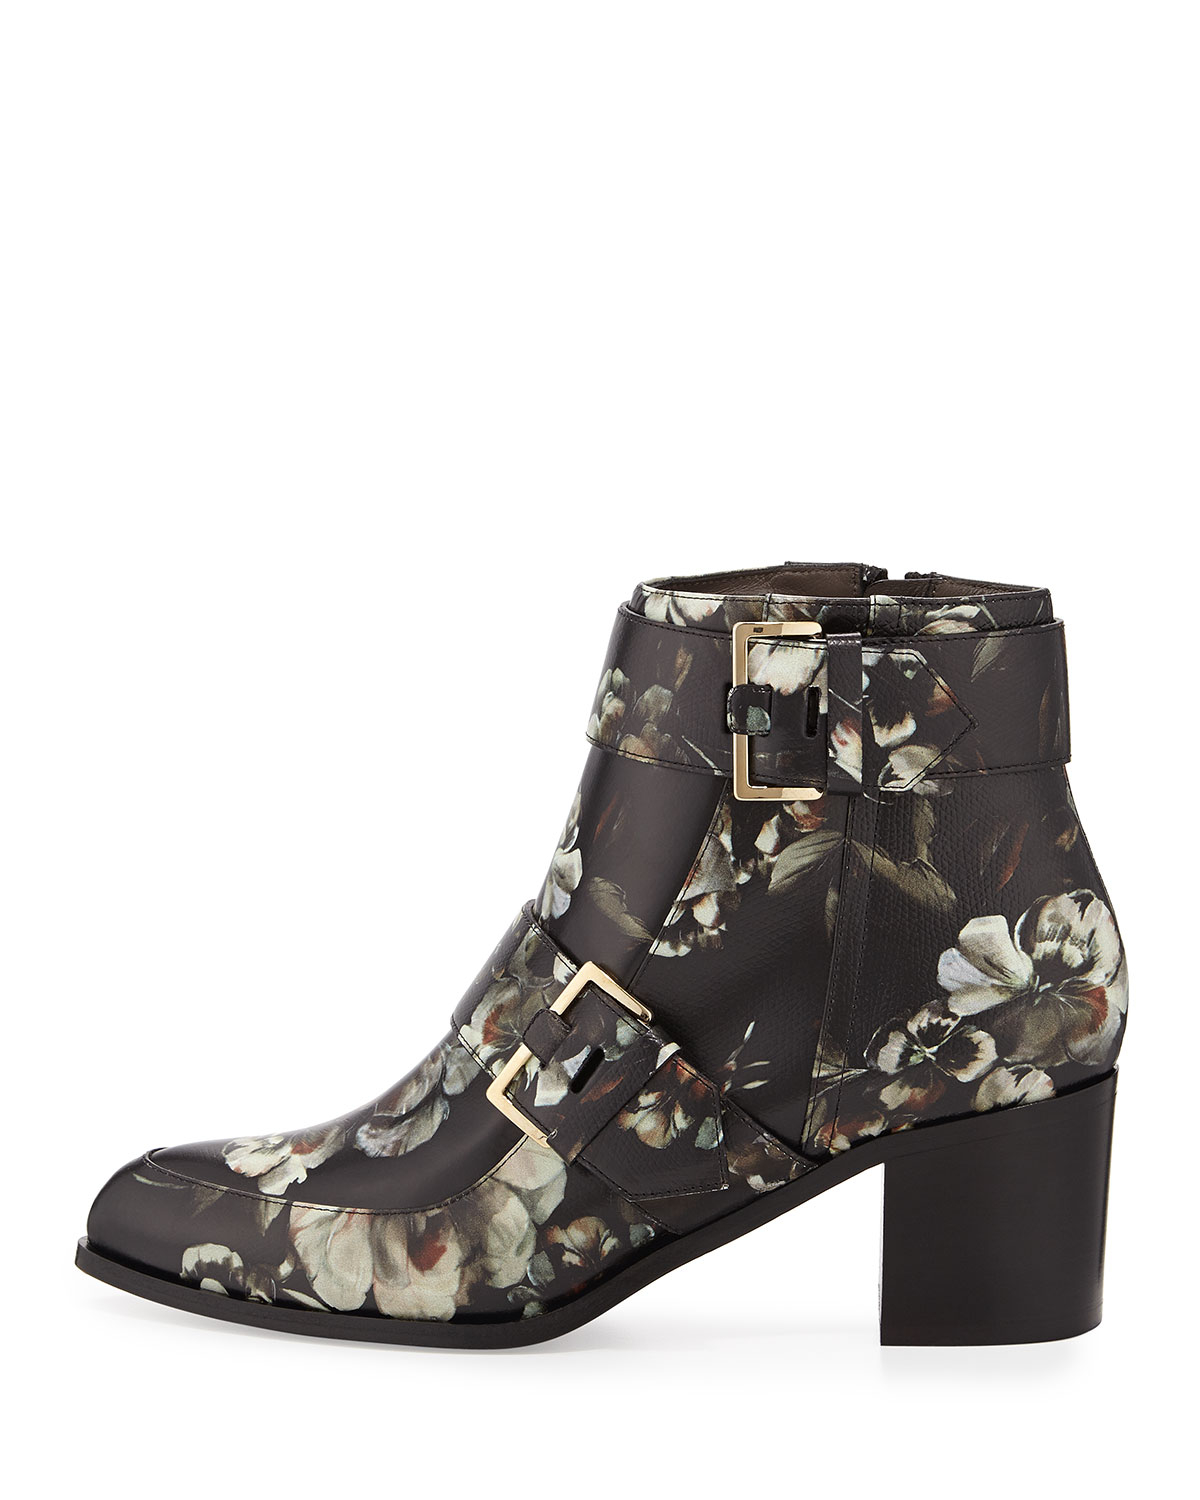 Lyst Jason Wu Floral Printed Leather Boot